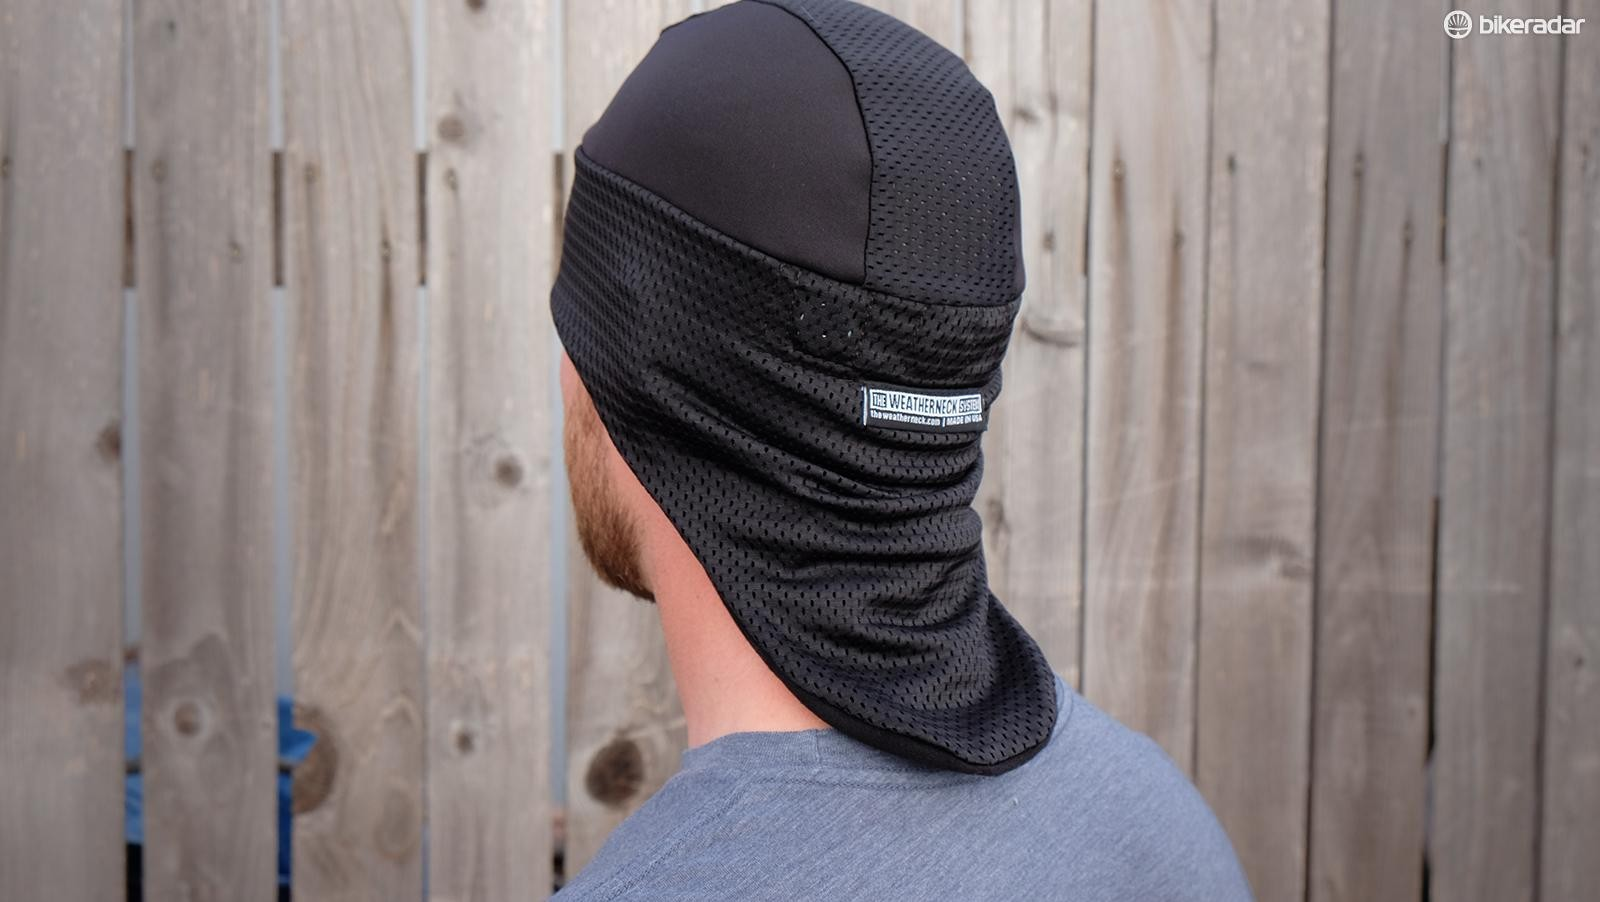 The 'Mullet Hat' name makes a lot of sense from the back